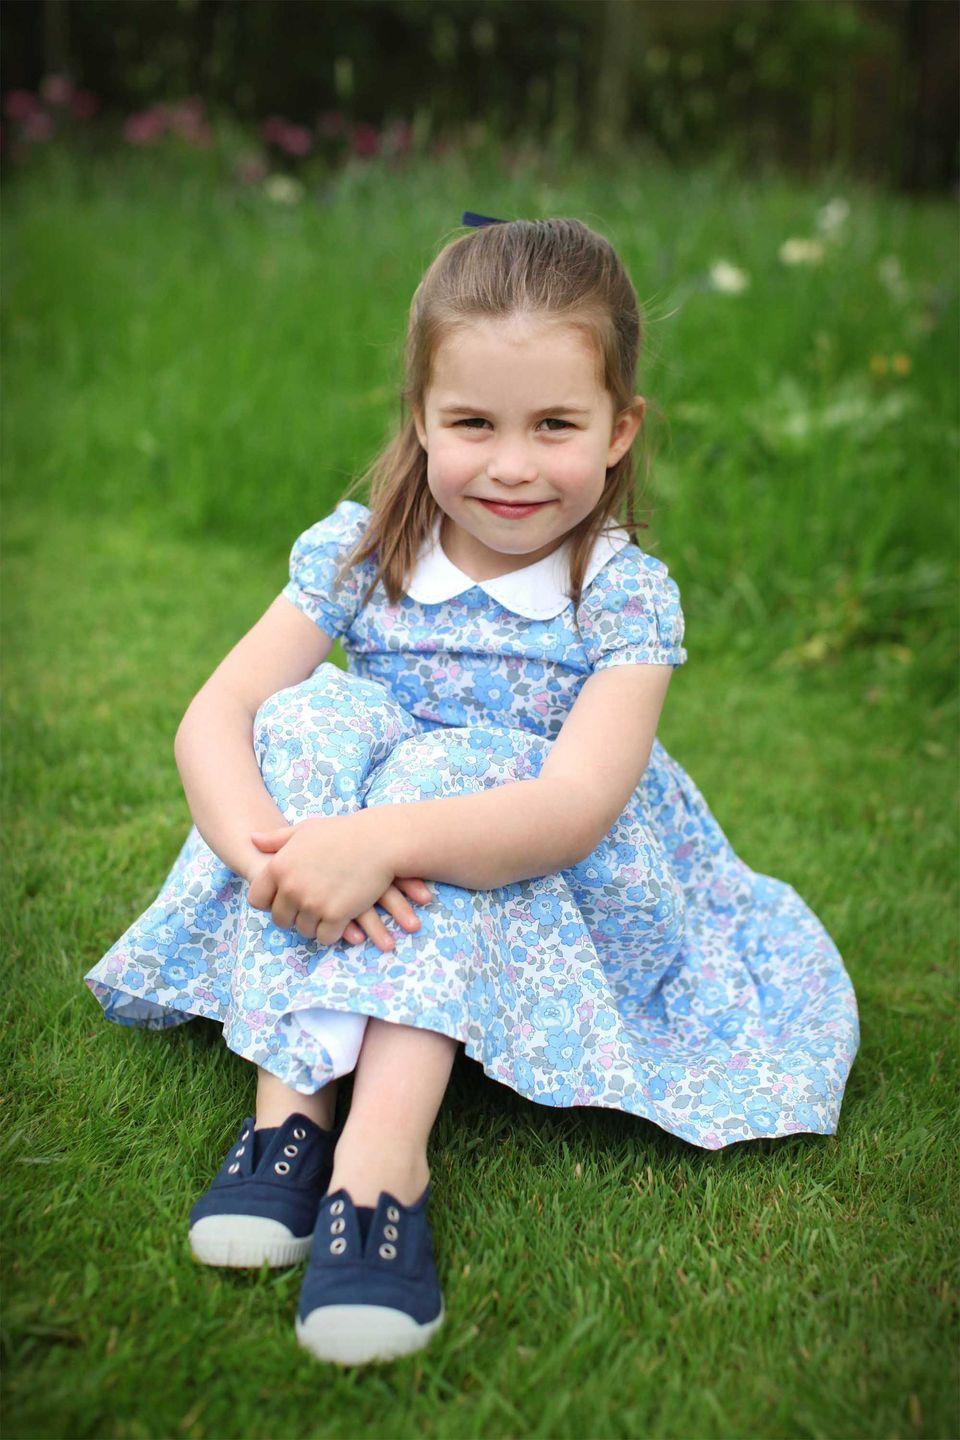 "<p>Happy birthday, Princess Charlotte! For her fourth birthday, the Duke and Duchess of Cambridge <a href=""https://www.harpersbazaar.com/celebrity/latest/a27335344/princess-charlotte-fourth-birthday-portraits-compared/"" rel=""nofollow noopener"" target=""_blank"" data-ylk=""slk:released"" class=""link rapid-noclick-resp"">released</a> a series of sweet portraits, all taken by the duchess. </p>"